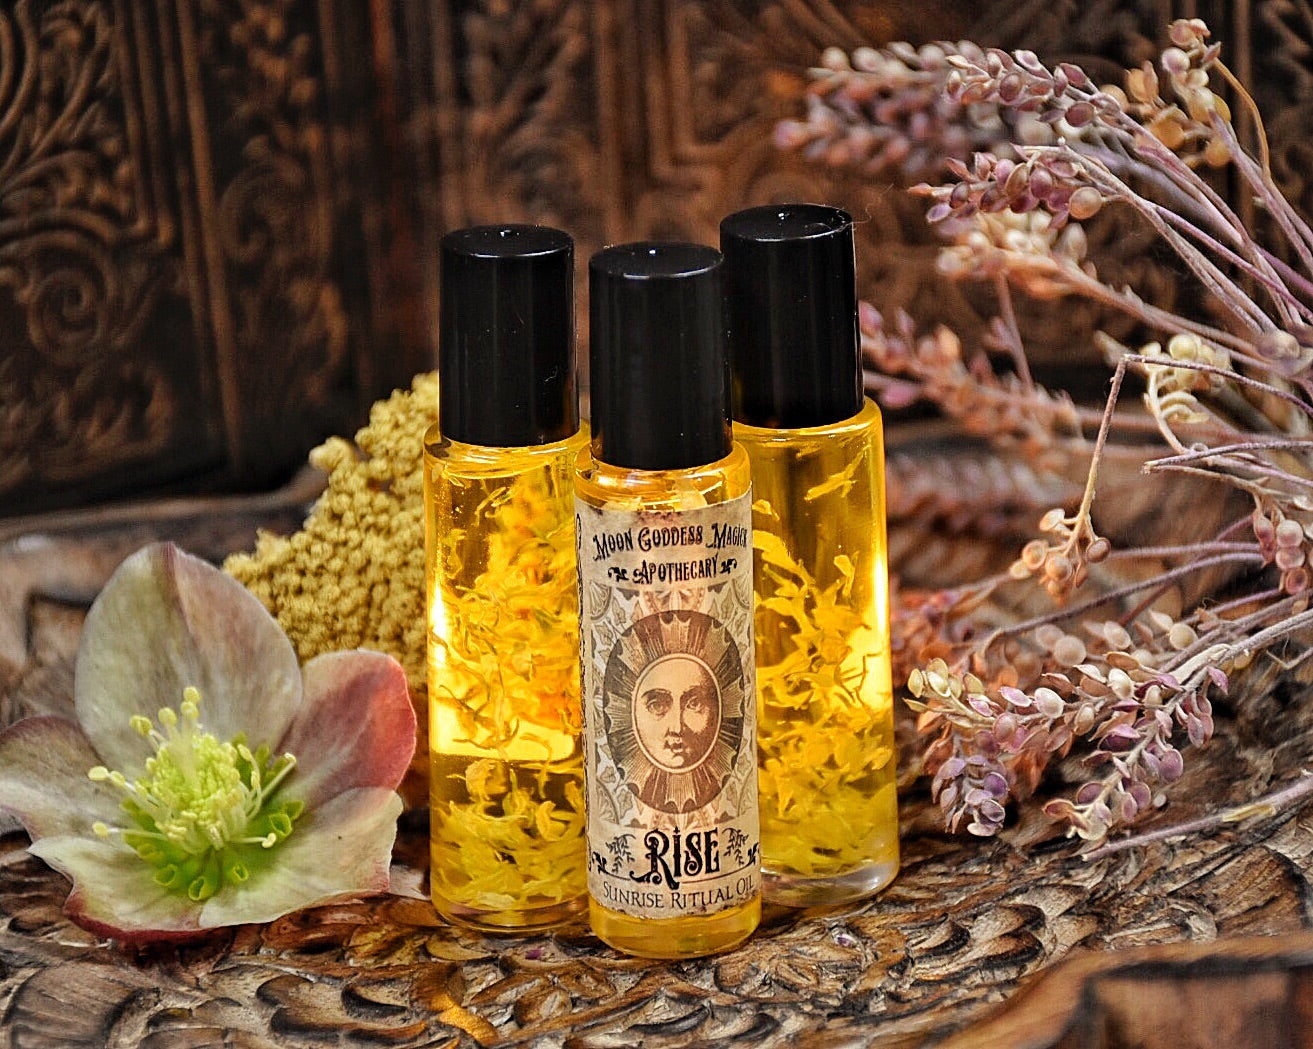 Rise and Rest /// Organic Essential Oil Blend for Sunrise and Sunset Body Blessing and Anointment for Daily Use /// 2 - 10ml Roll on Bottles - Moon Goddess Magick Apothecary